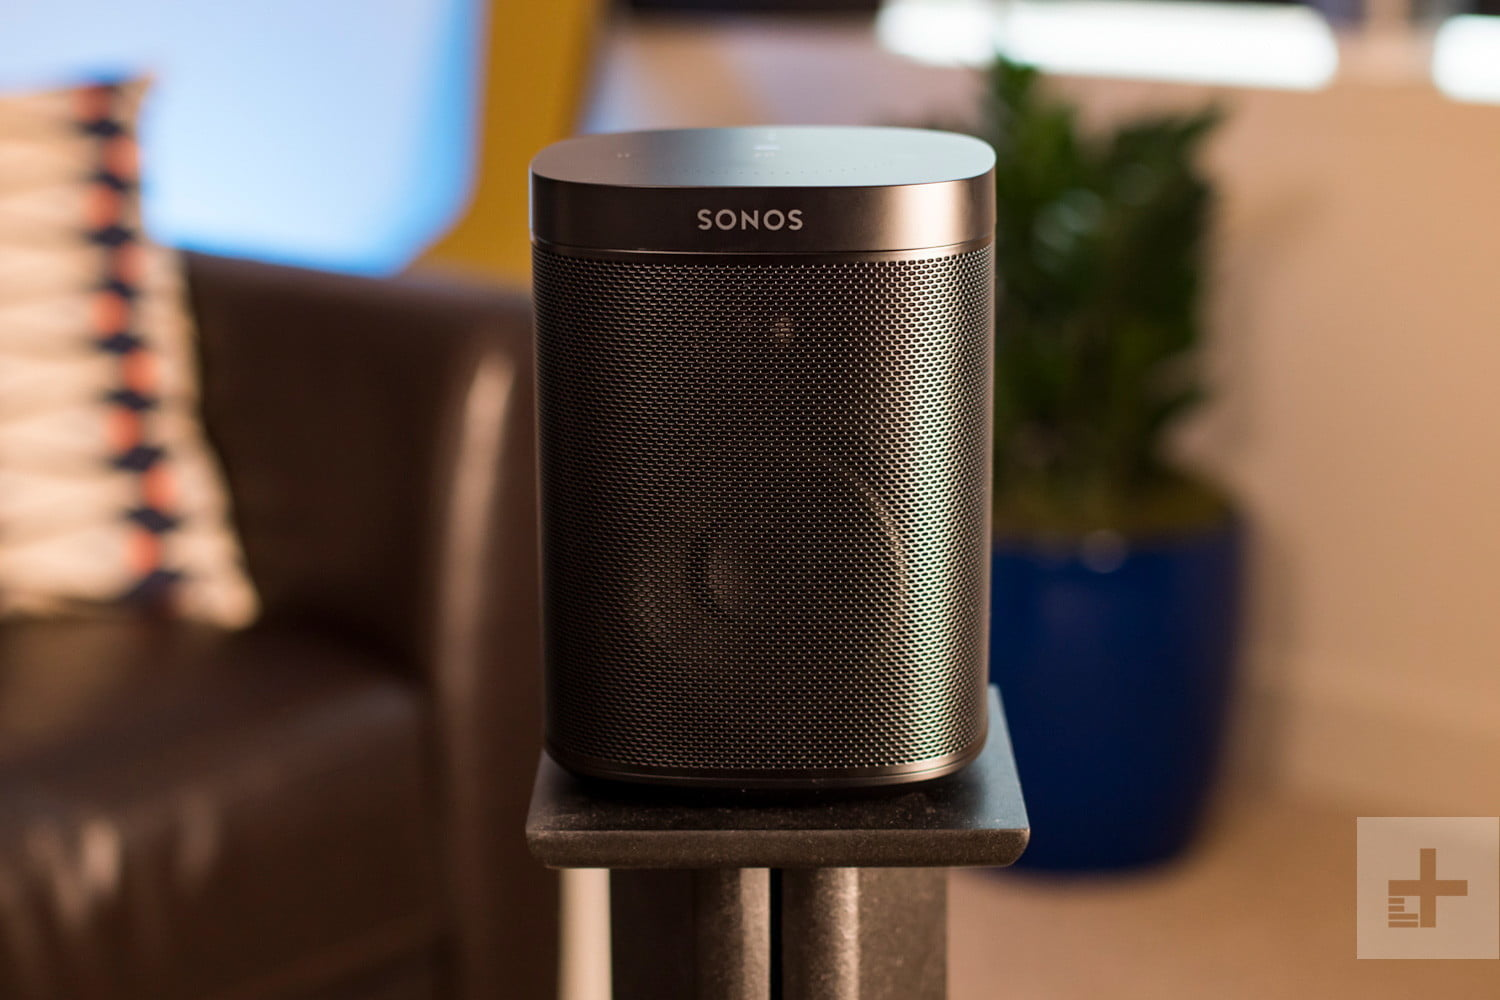 Sonos One Review: Finally, a Smart Speaker That Sounds Great